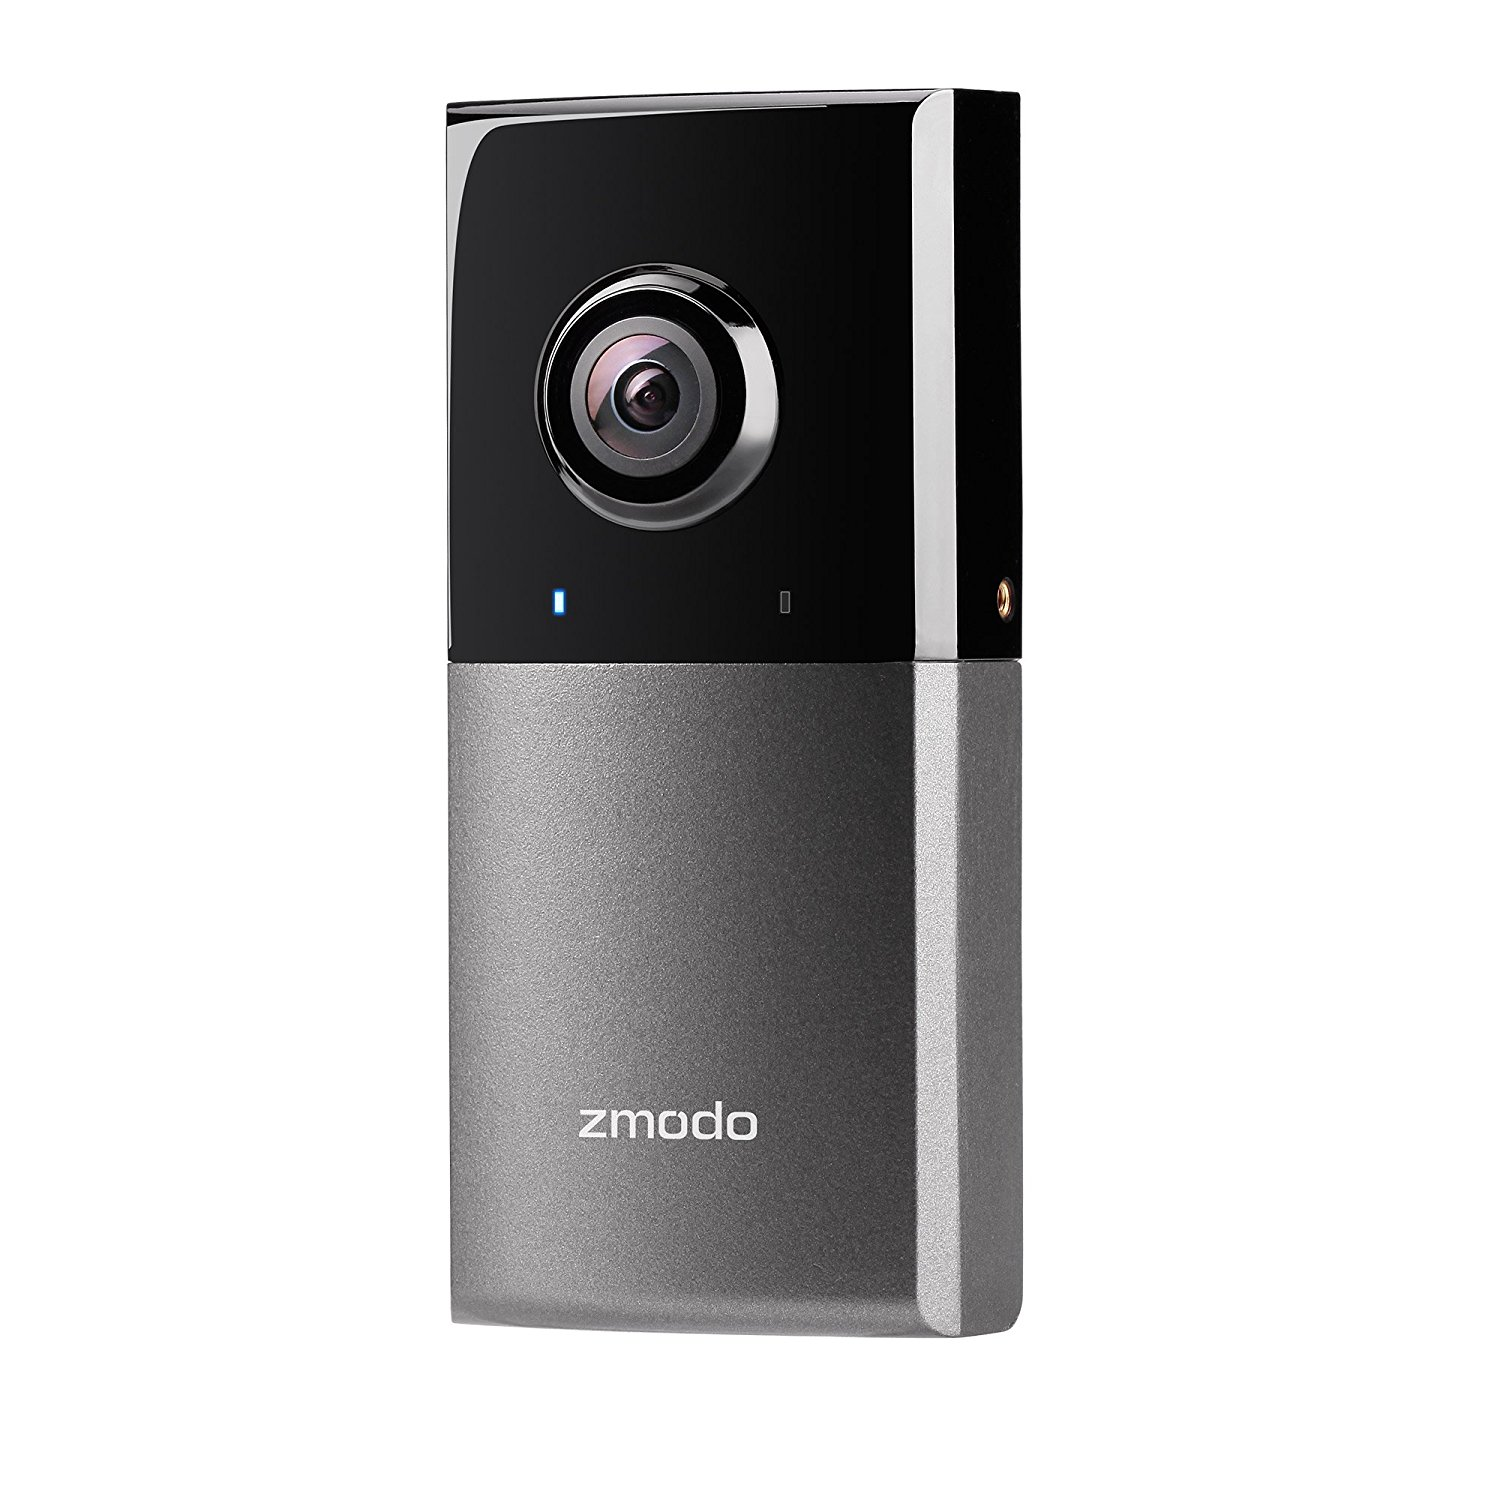 Security U0026 Safety. Best Deals U0026 User Reviews: Zmodo Sight 180 Outdoor  Wireless Security Camera, 180 Degree Viewing Angle Full HD 1080p Resolution  U2013 Cloud ...